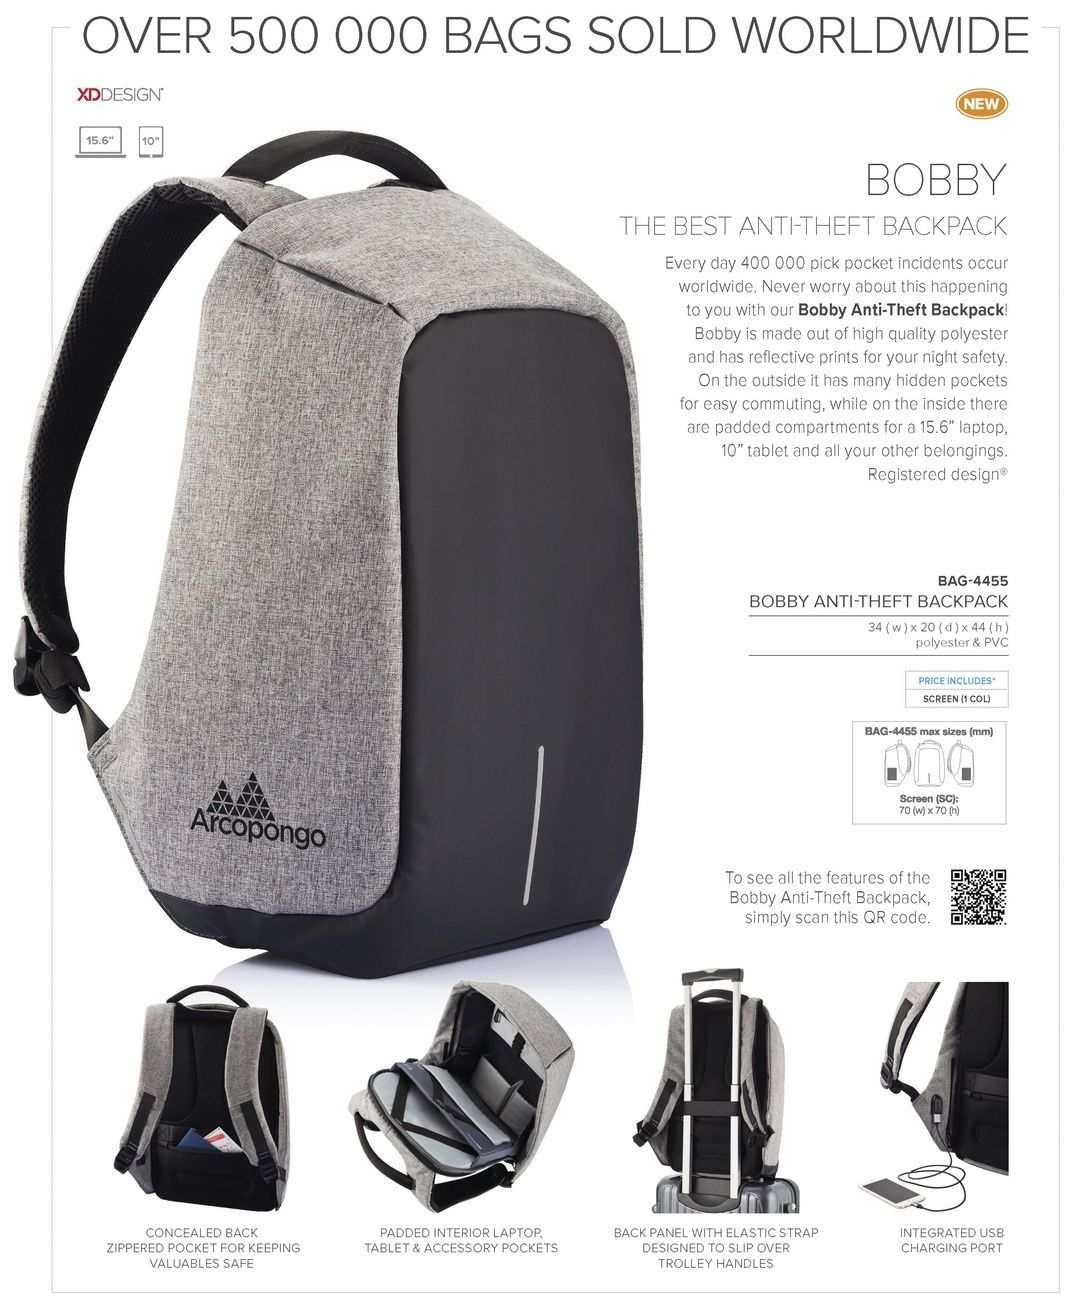 Bobby Anti Theft Backpack Bag 4455 From Best Branding The Every Day 400 000 Pick Pocket